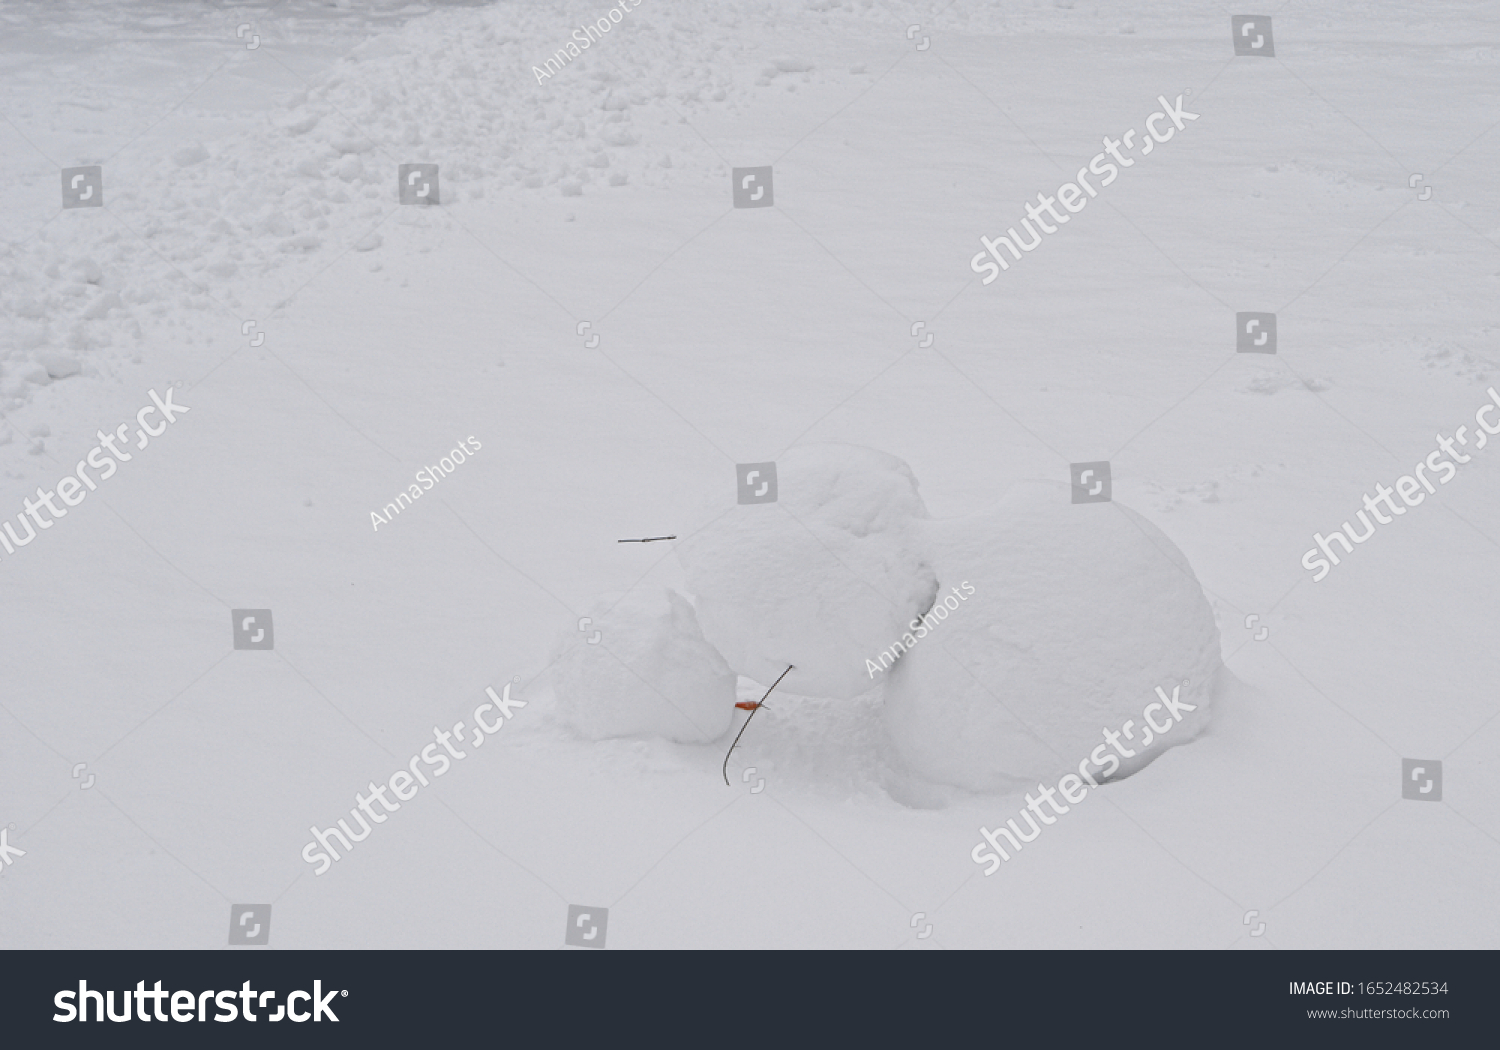 stock-photo-end-of-winter-a-broken-snowm